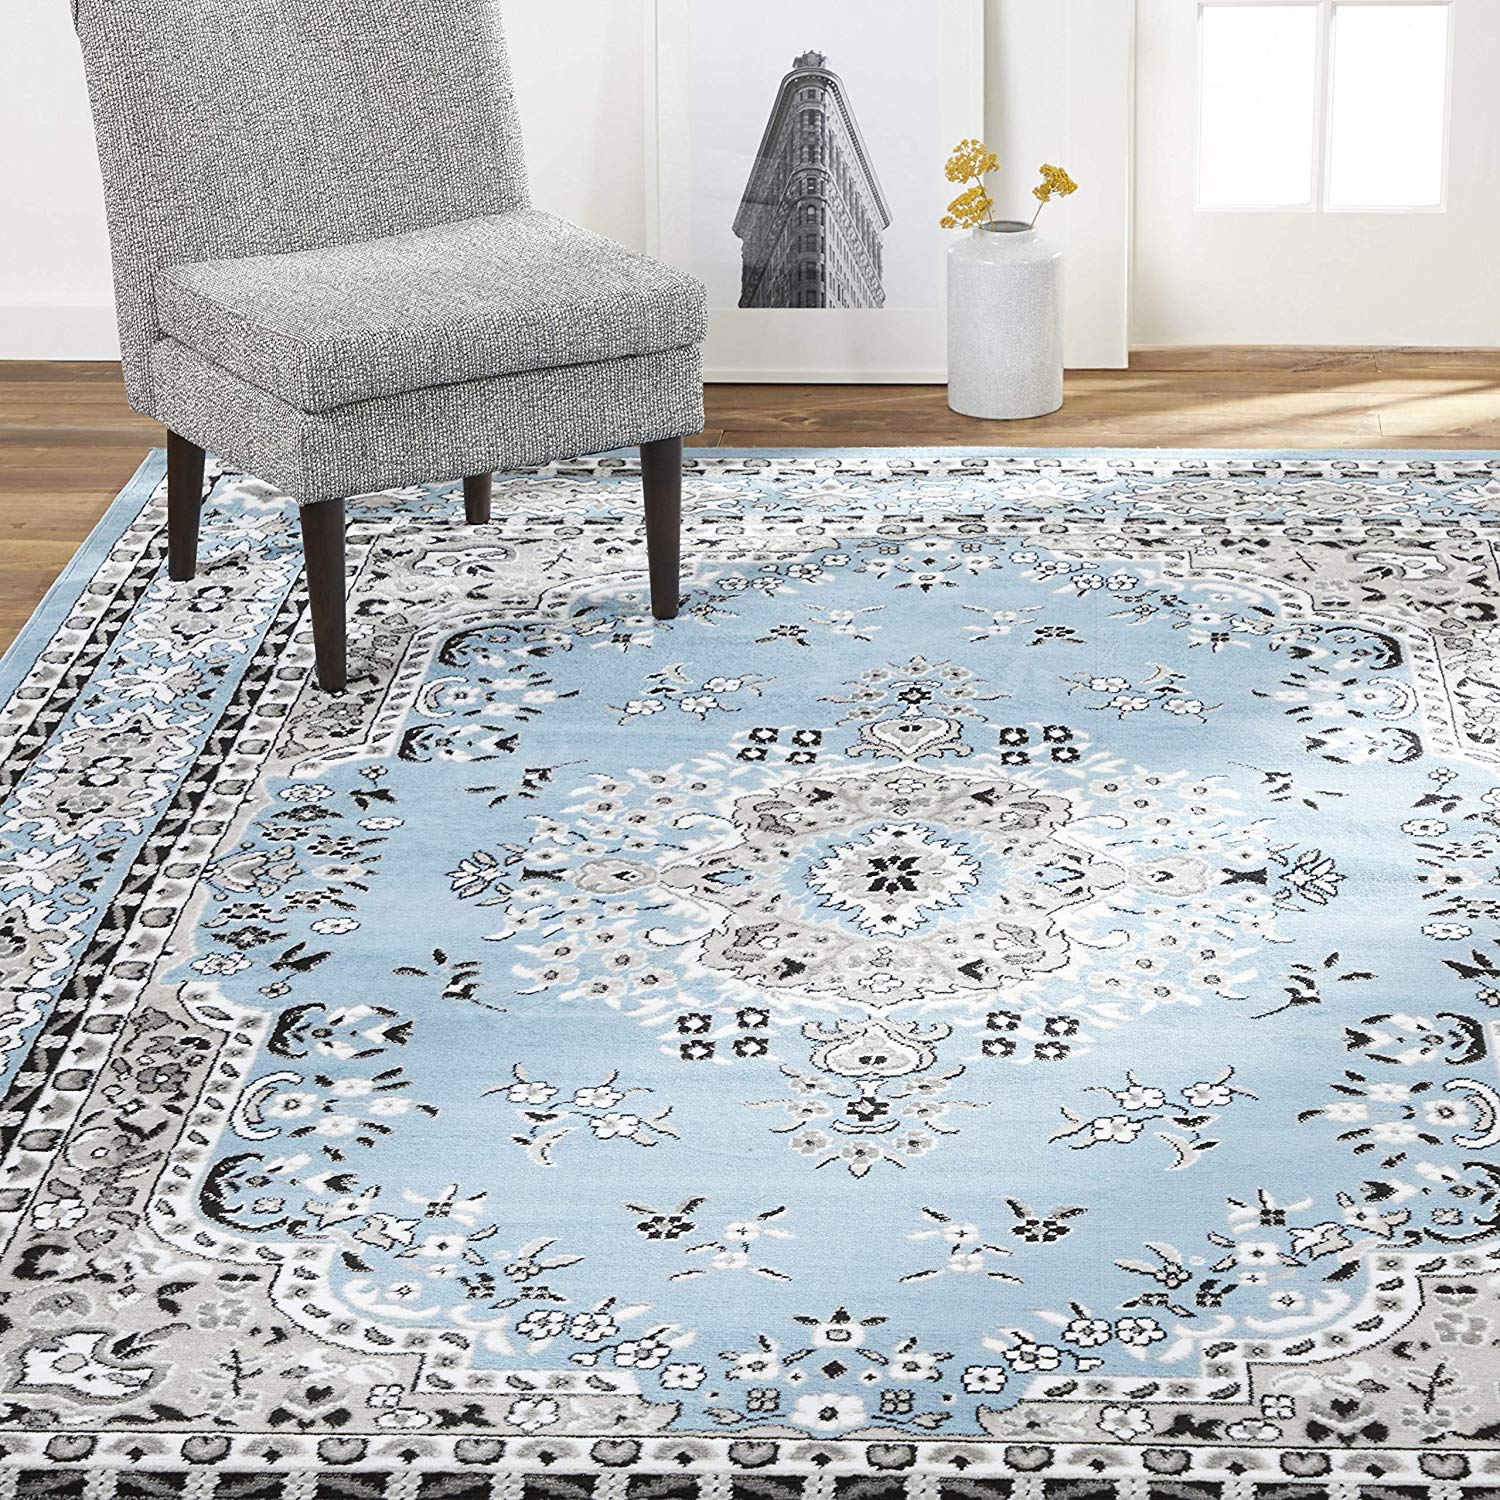 Large-Traditional-8x11-Oriental-Area-Rug-Persien-Style-Carpet-Approx-7-039-8-034-x10-039-8-034 thumbnail 8